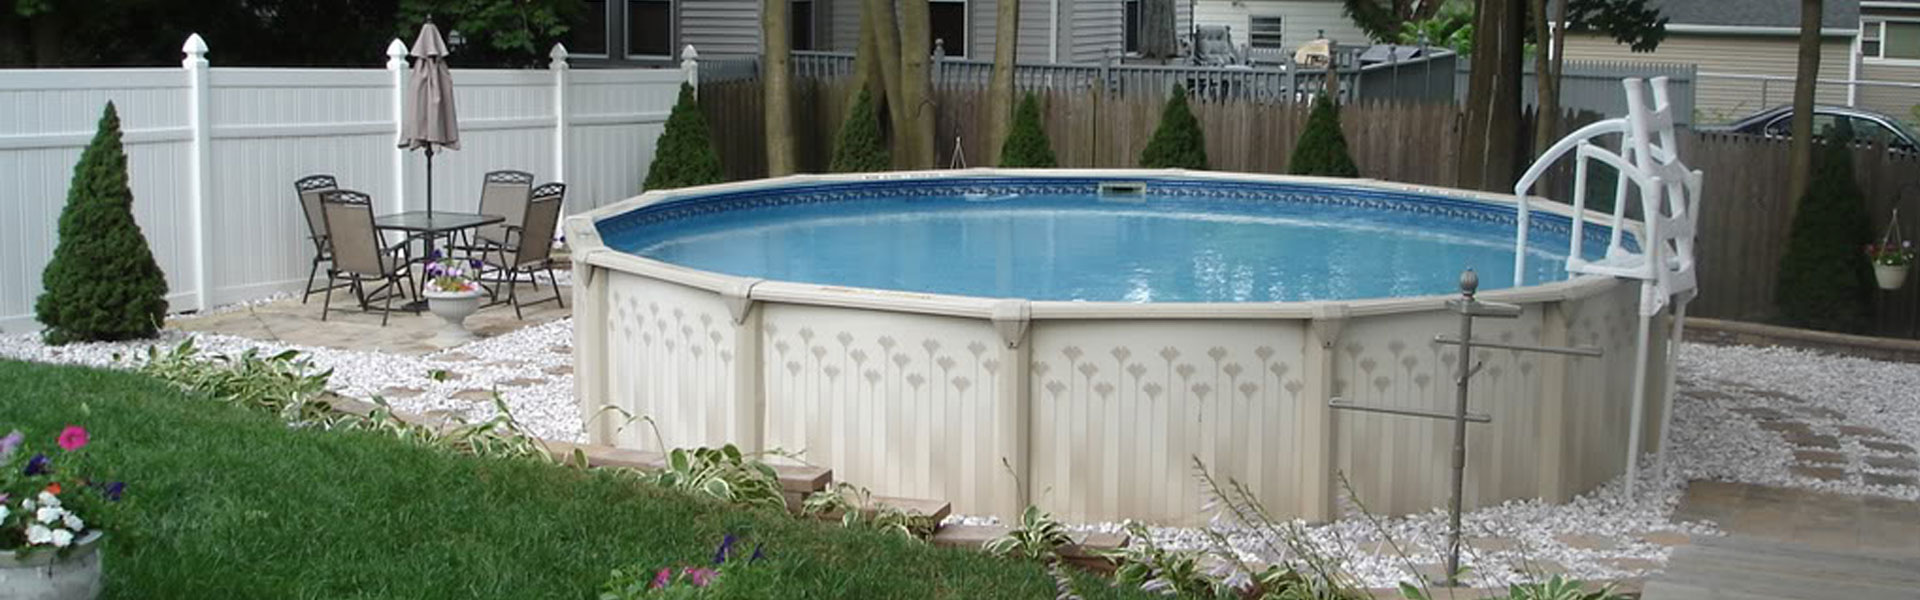 Above Ground Pool Installers Frederick Md Round Designs